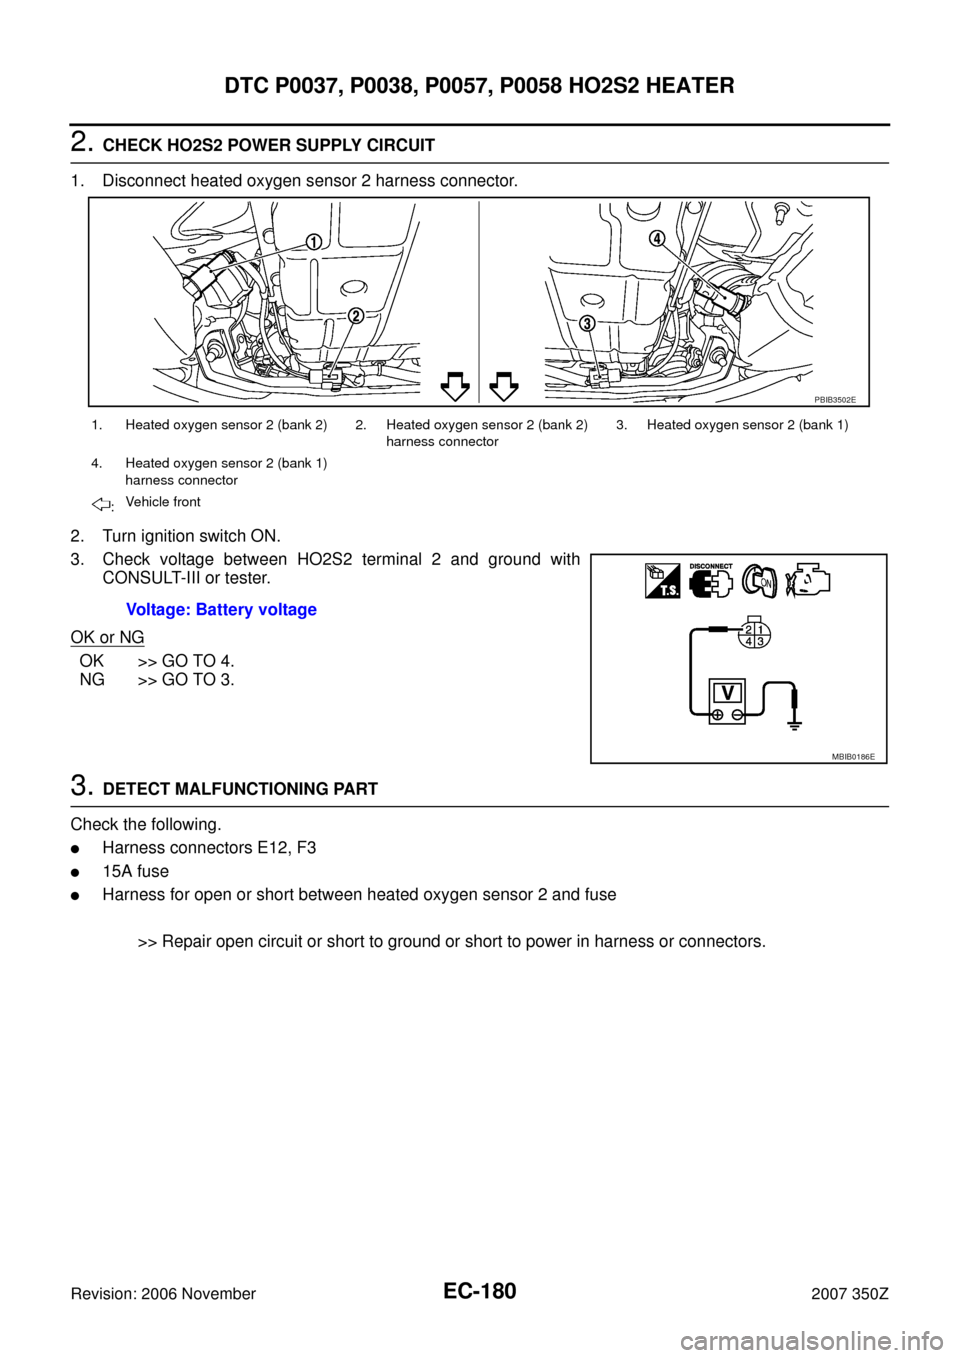 2007 350z Engine Cooling Diagram Fuse Box Nissan Control Workshop Manual 960x1358